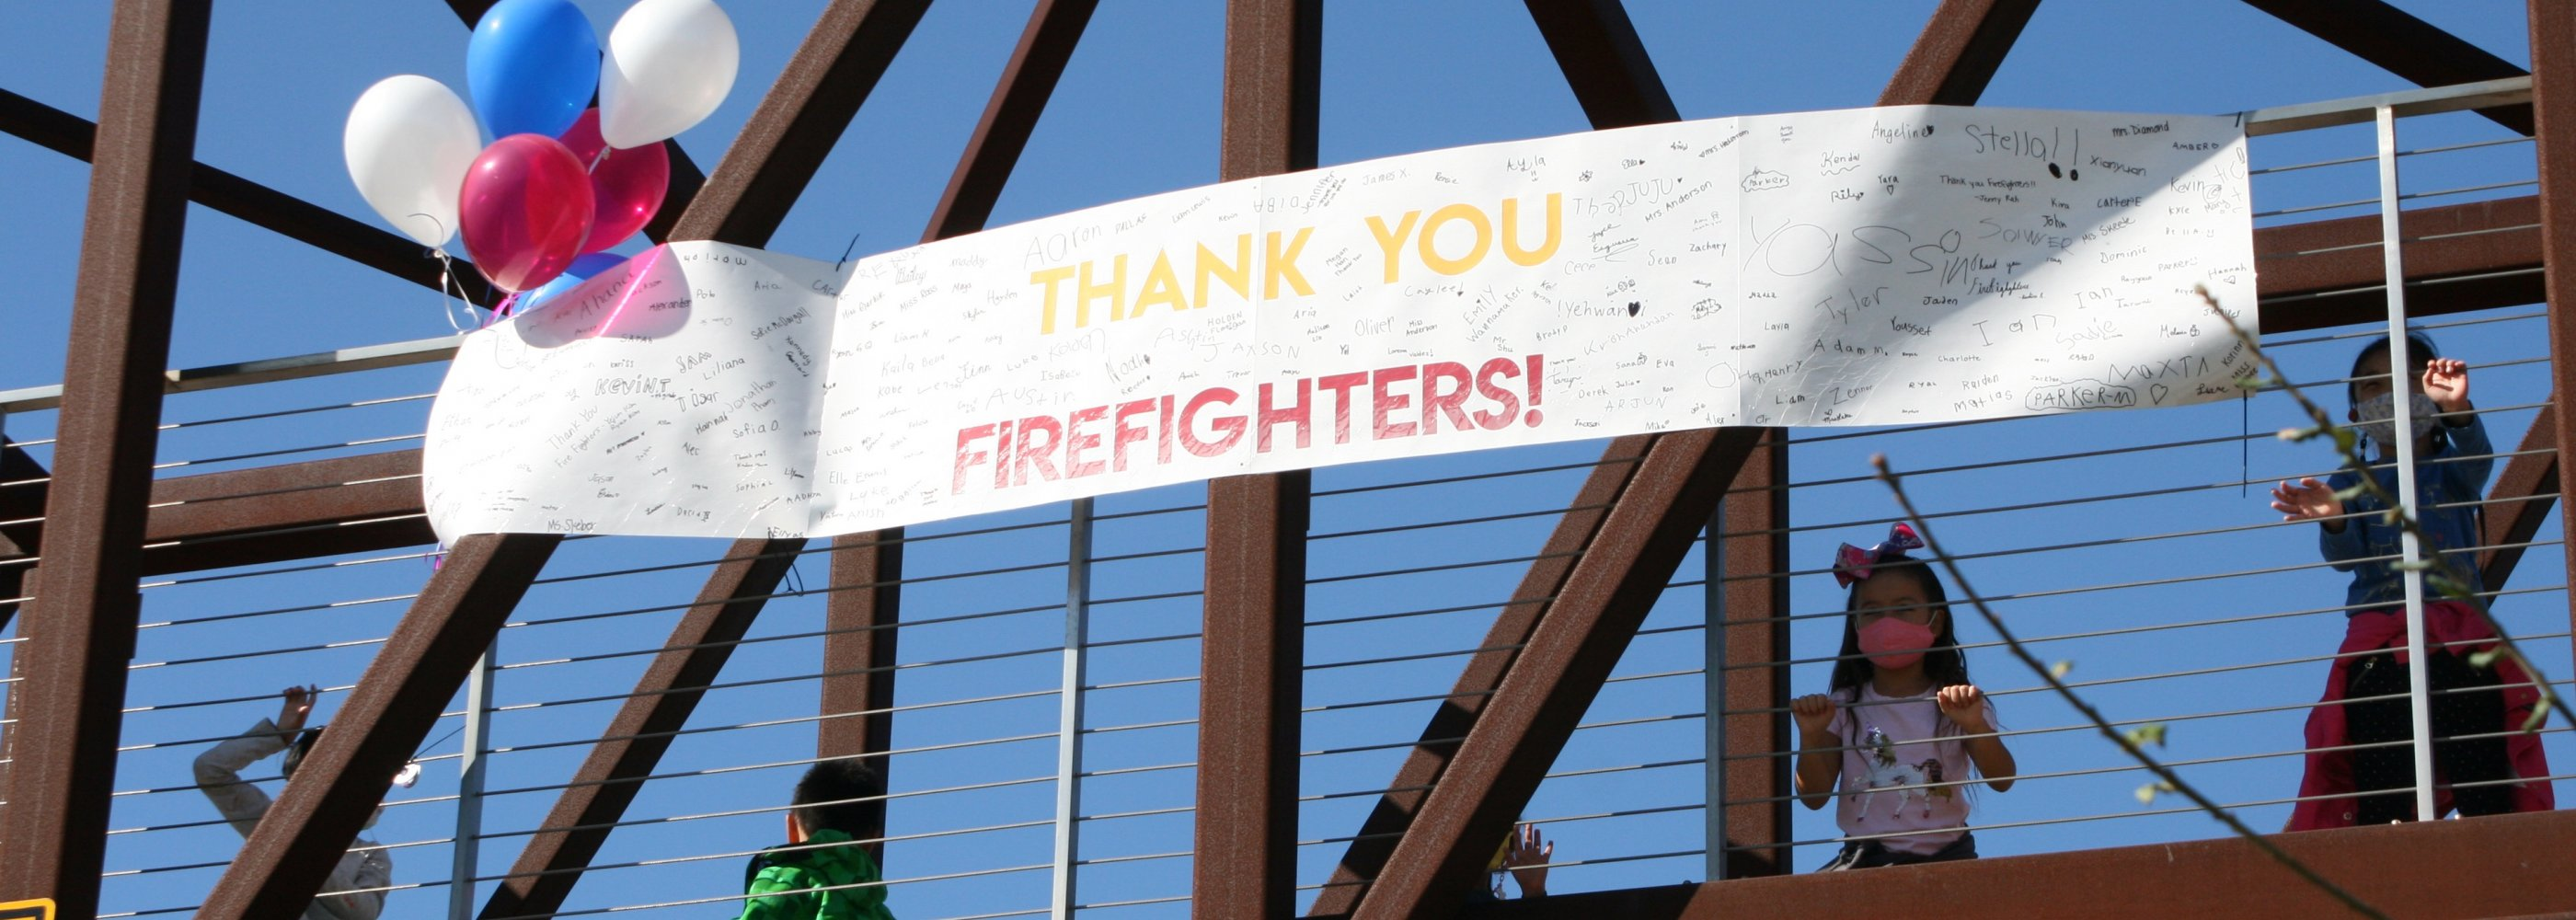 Thank you sign to fire fighters on bridge